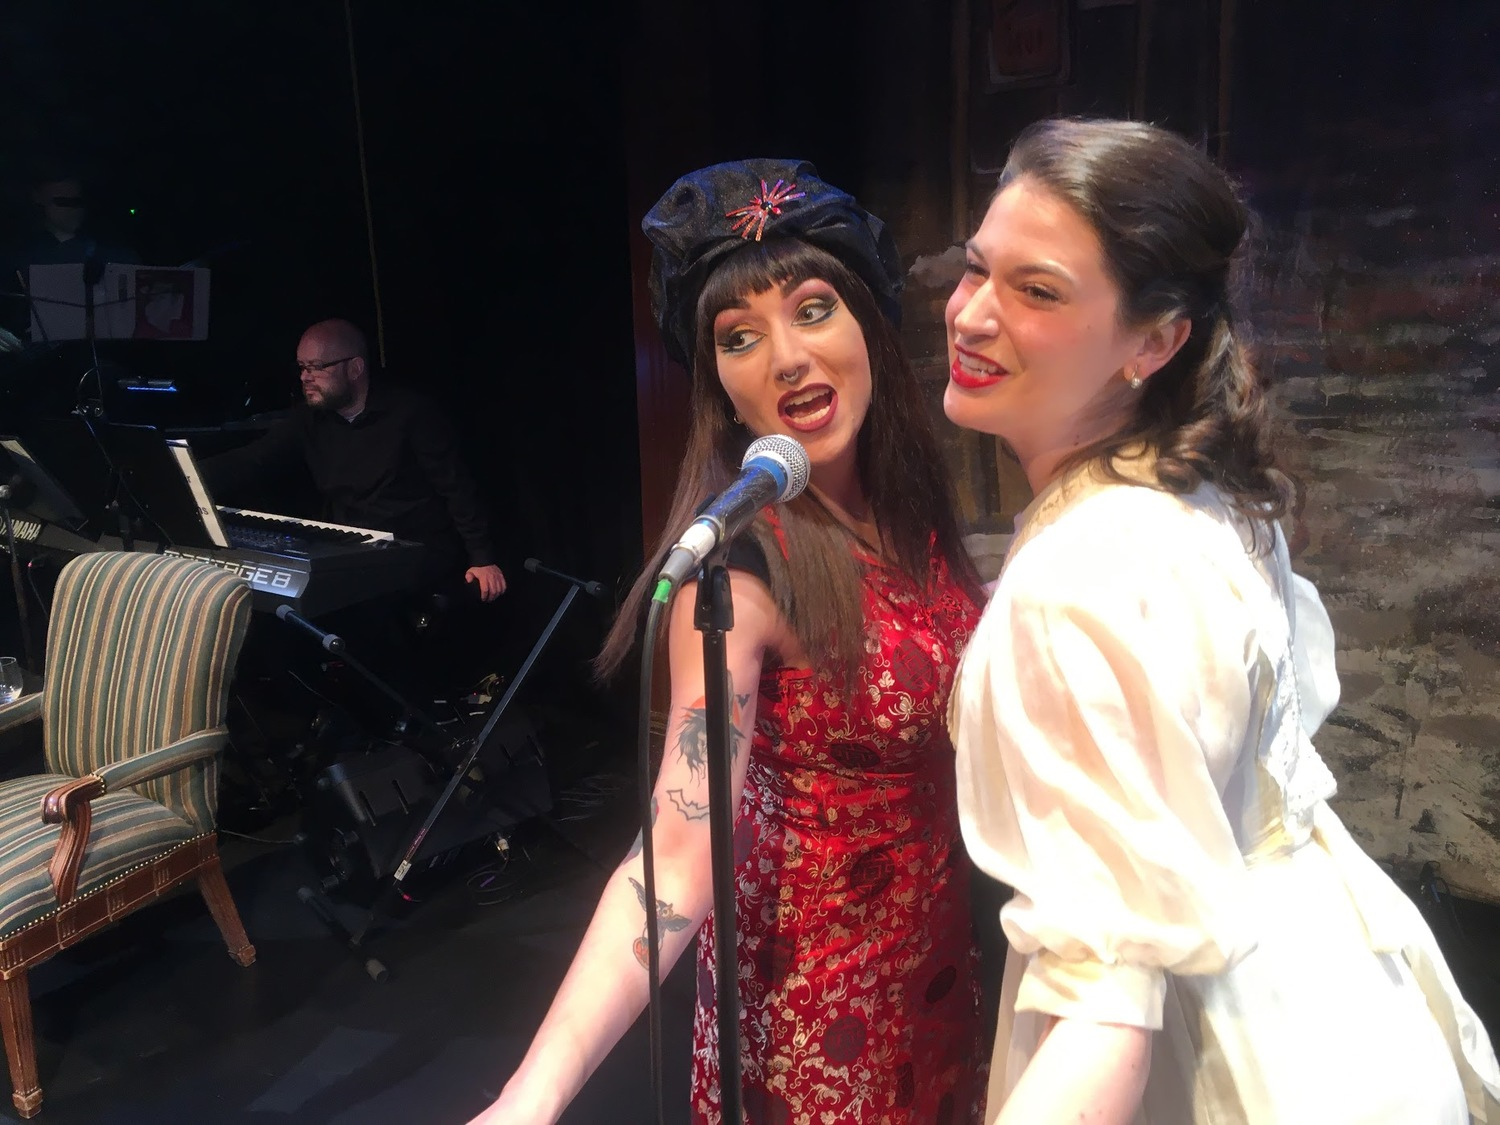 BWW Review: Landless Theatre's THE MYSTERY OF EDWIN DROOD [SYMPHONIC METAL VERSION] is Original and Entertaining